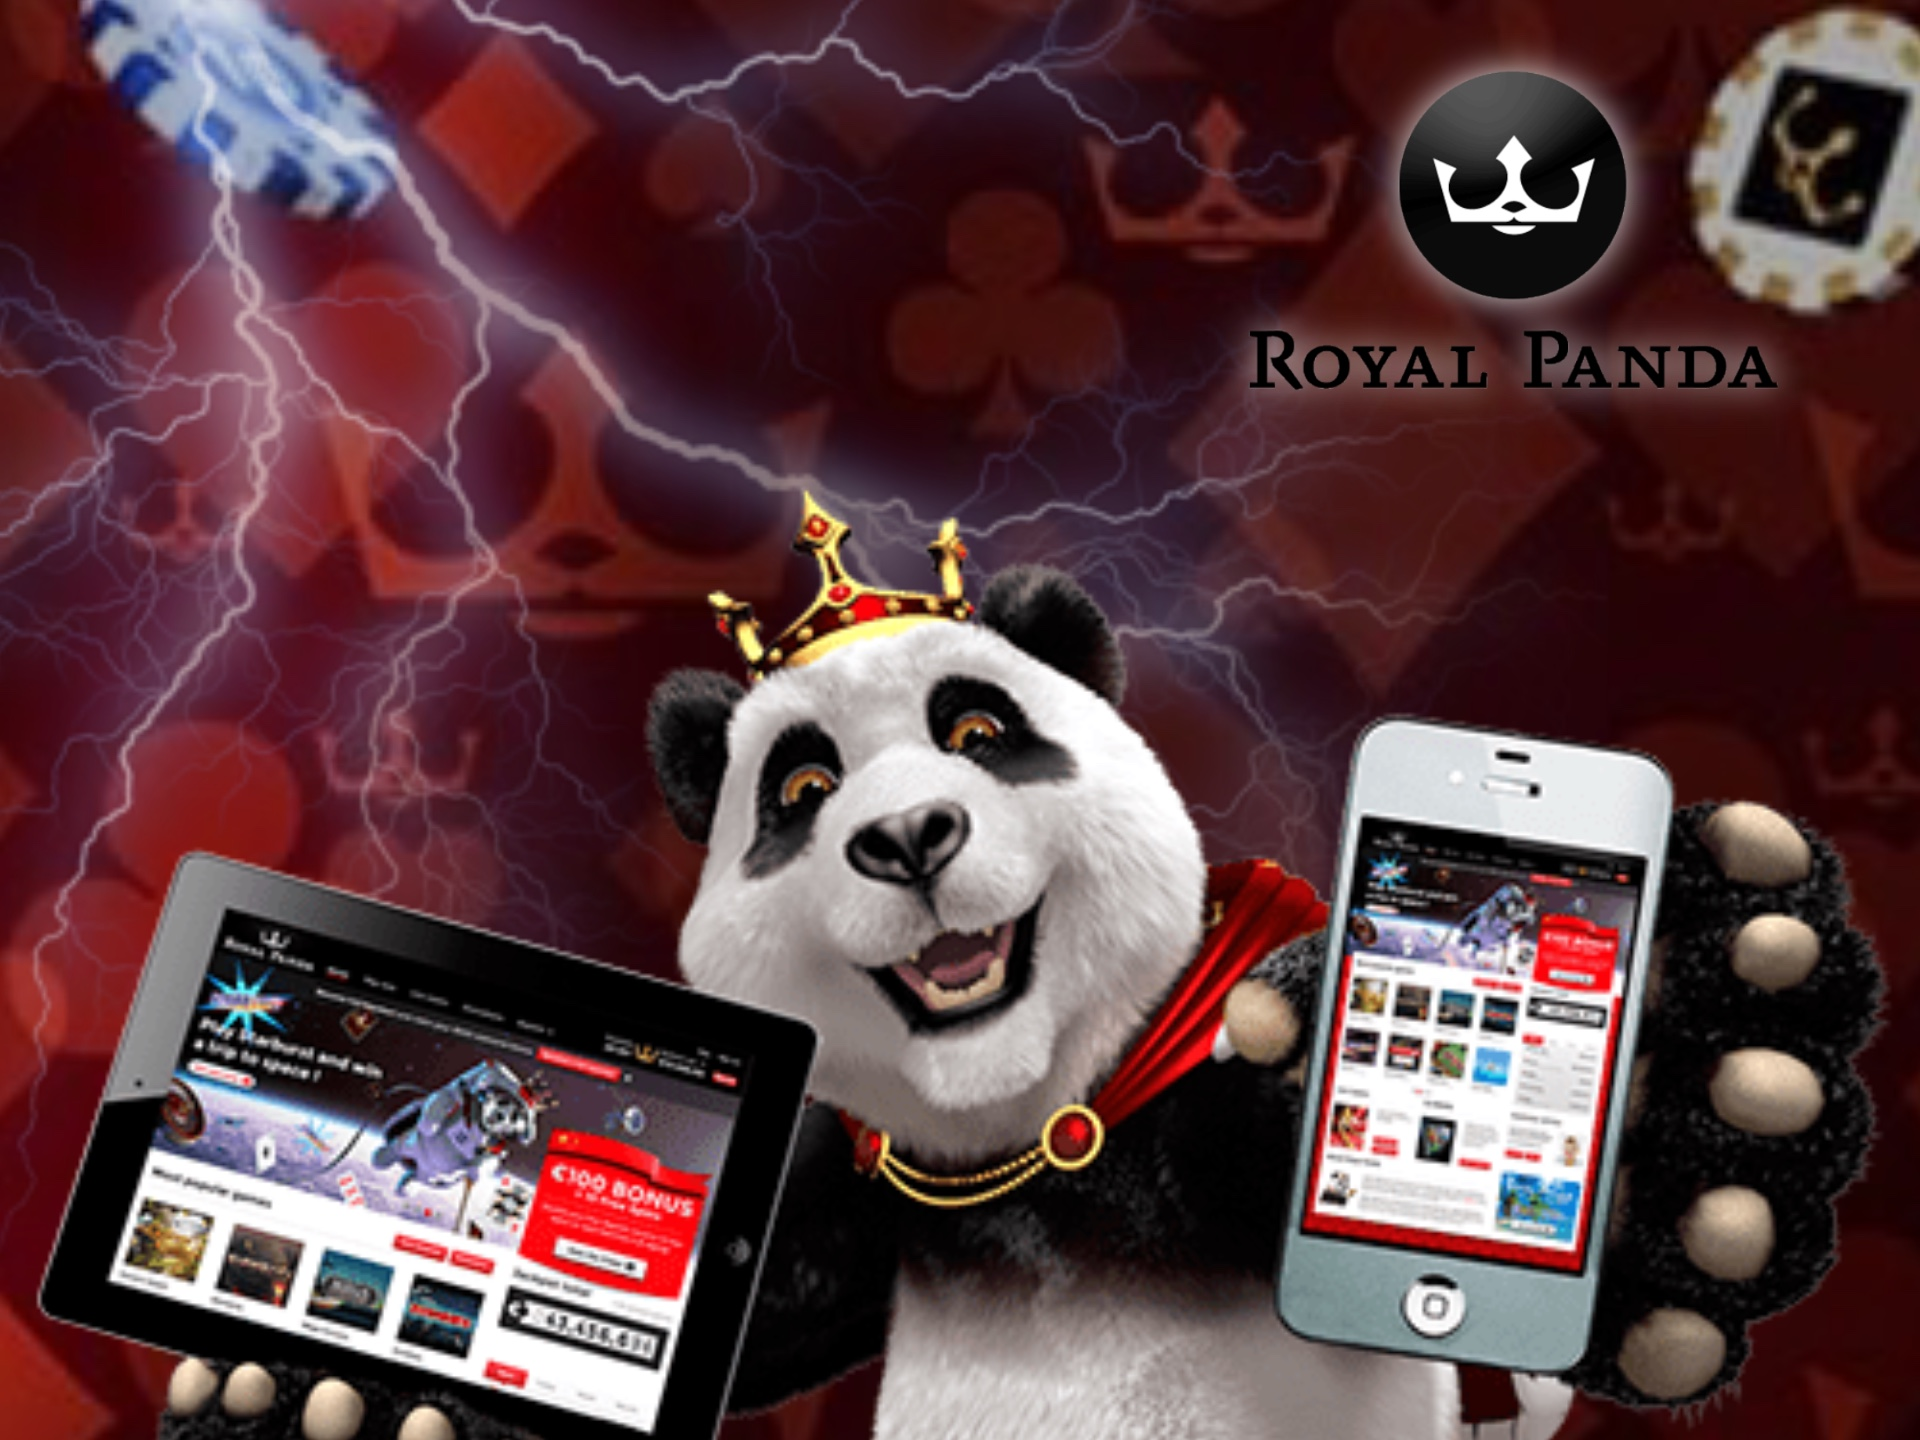 Royal Panda mobile app has a user-friendly interface and is easy to use.